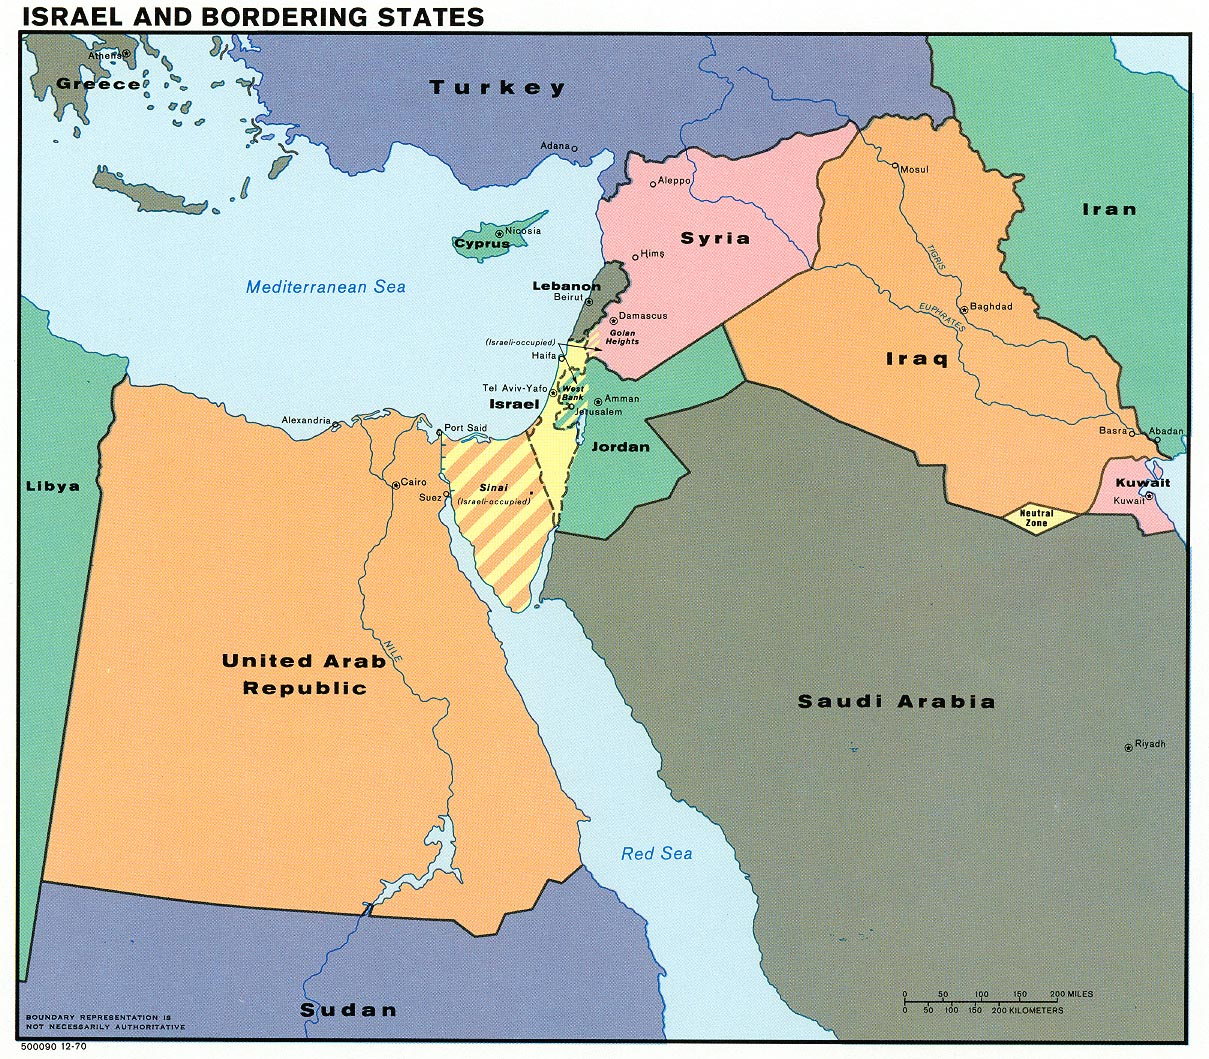 Israel and Bordering States Map